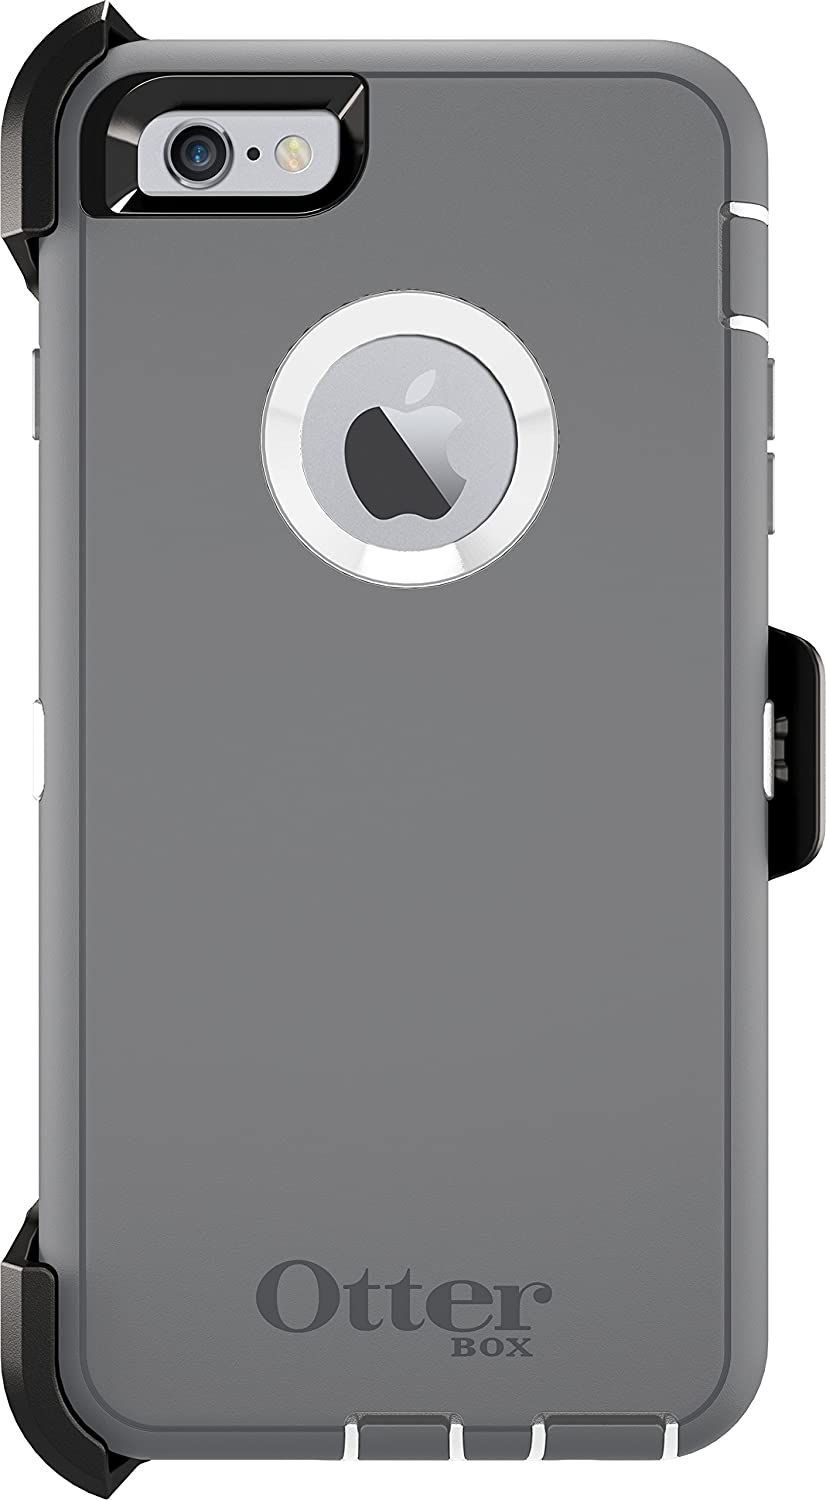 promo code 55afe 38f0b OtterBox DEFENDER iPhone 6 Plus/6s Plus Case - Retail Packaging - GLACIER  (WHITE/GUNMETAL GREY)